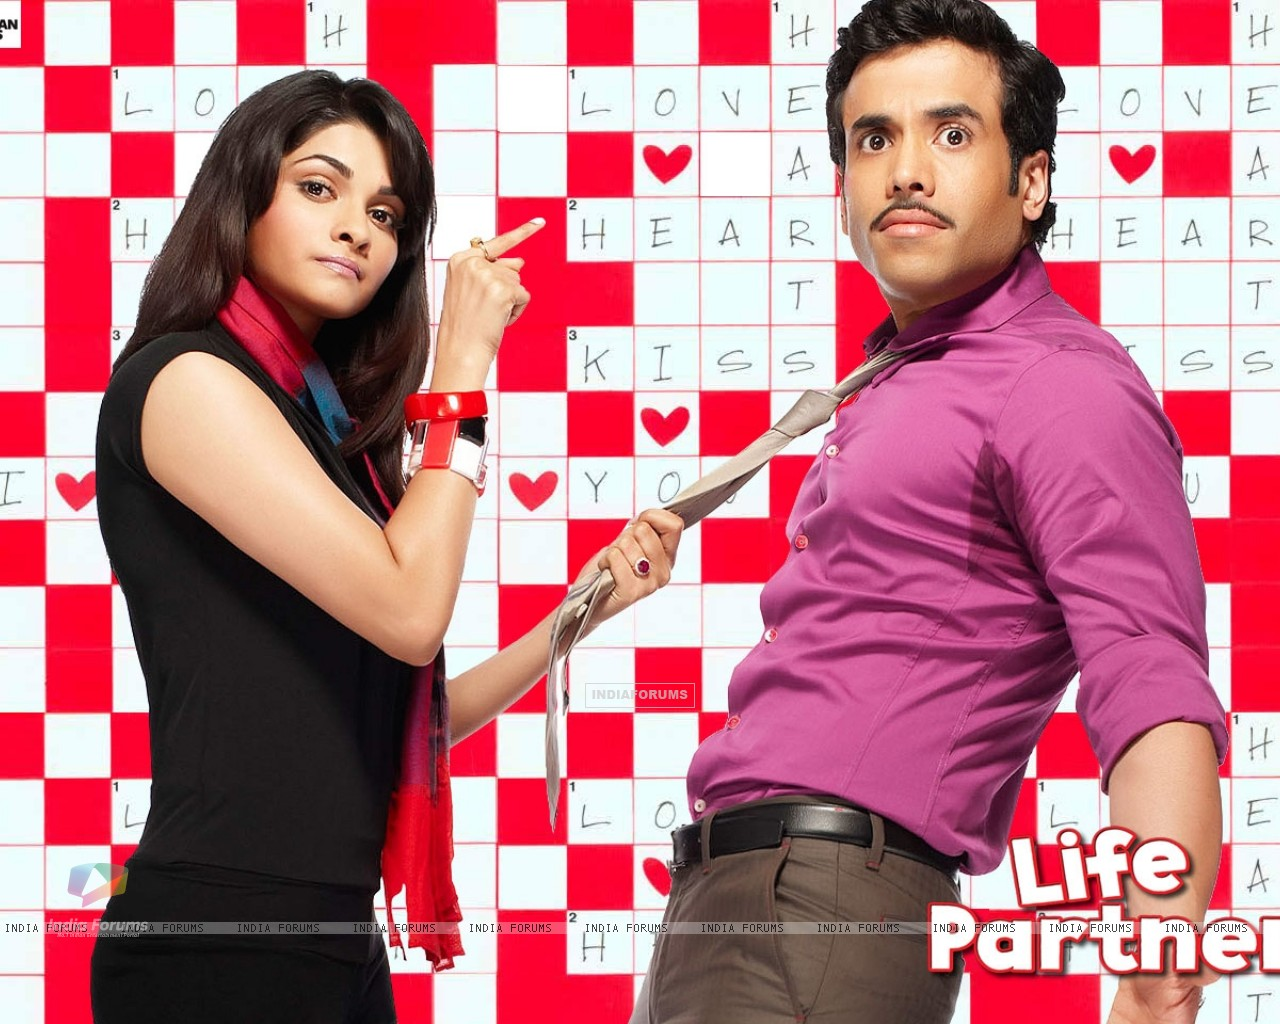 Life Partner wallpaper with Tusshar and Prachi (31423) size:1280x1024